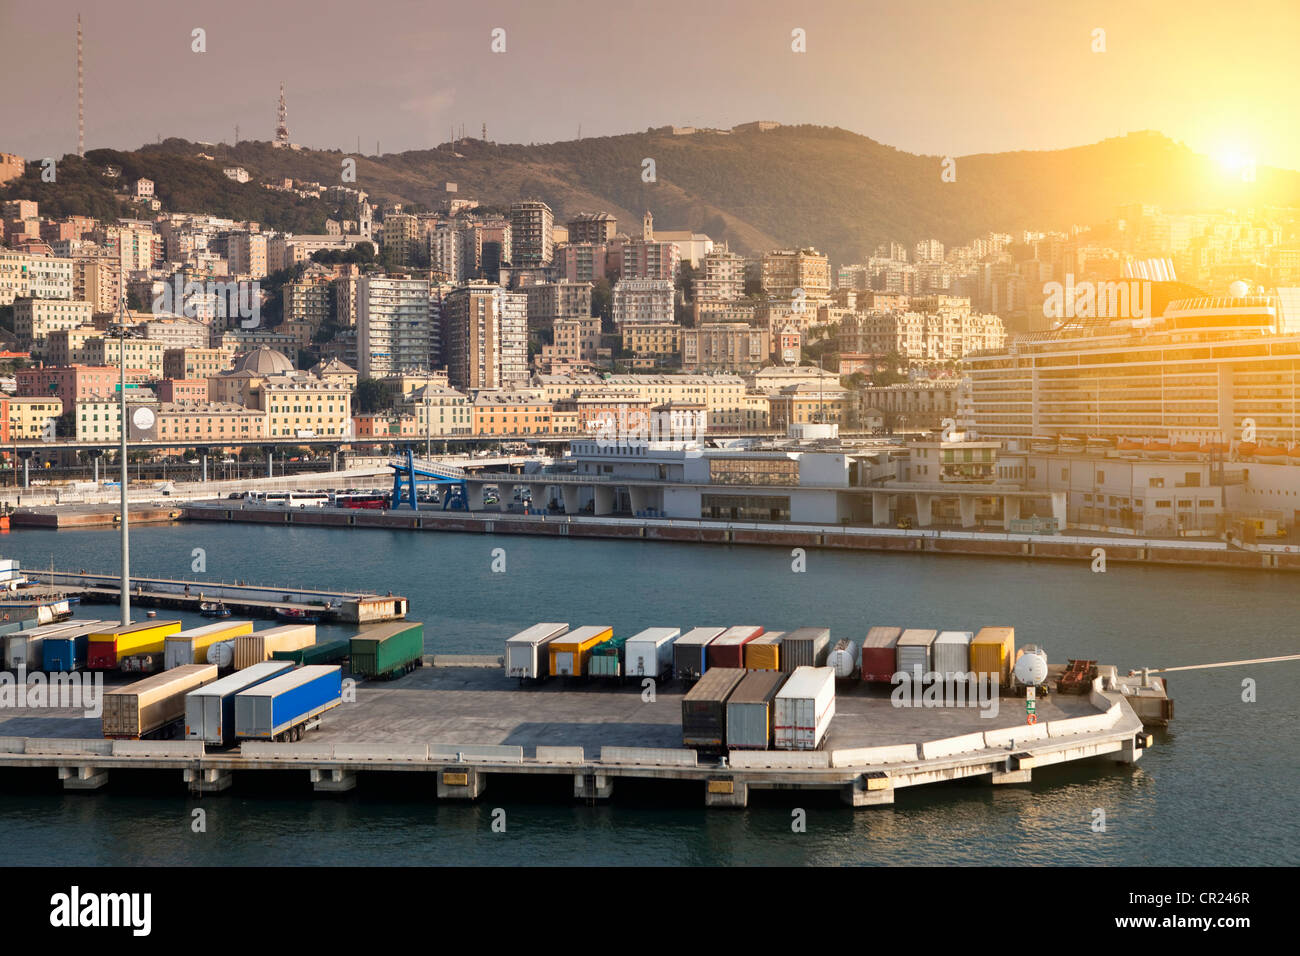 Shipping containers on urban pier - Stock Image